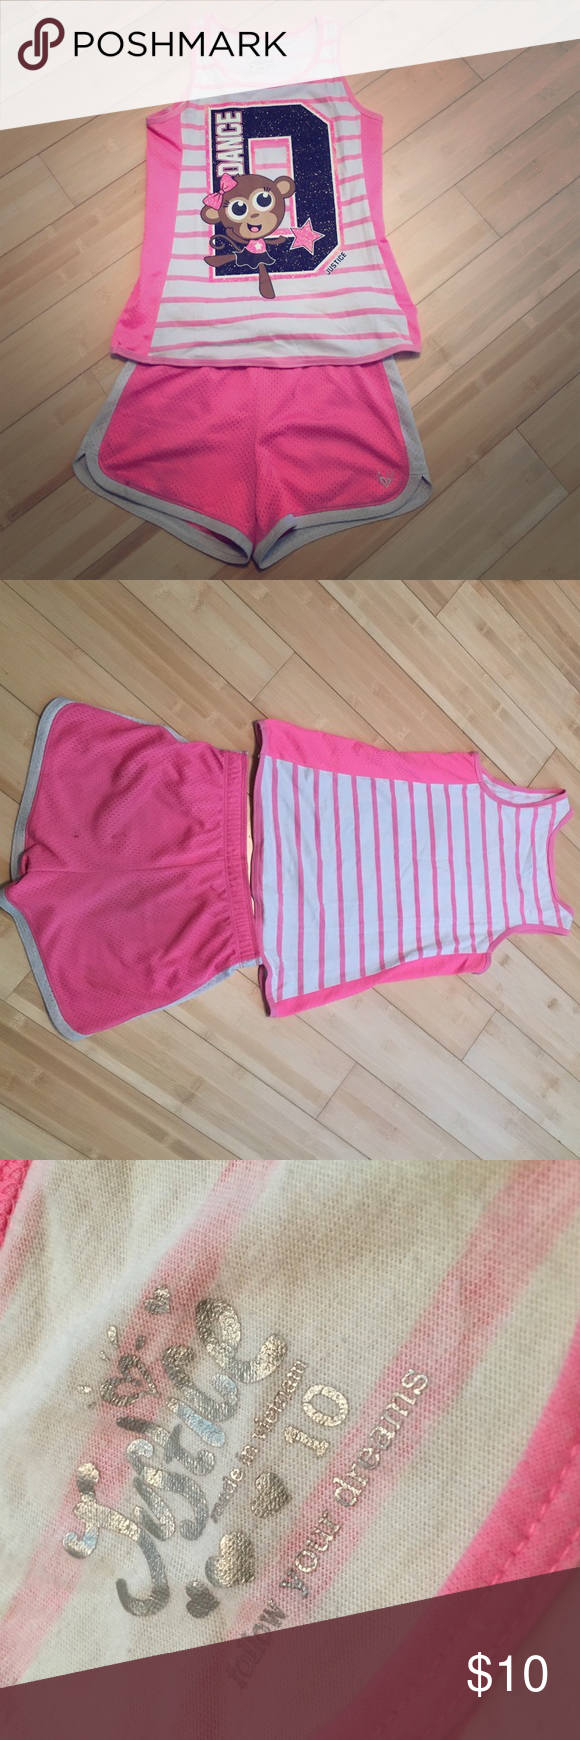 Justice girls athletic tank and shorts set This set has been worn. The shorts have been worn a lot more than the shirt. Both a size 10. Have lots of stretch. Bottoms have some stains on the back (as shown in the last picture). The shirt has one stain on the lower back that's bluish. Looks like a crayon smudge (very small). Overall, cute and comfortable! Justice Matching Sets